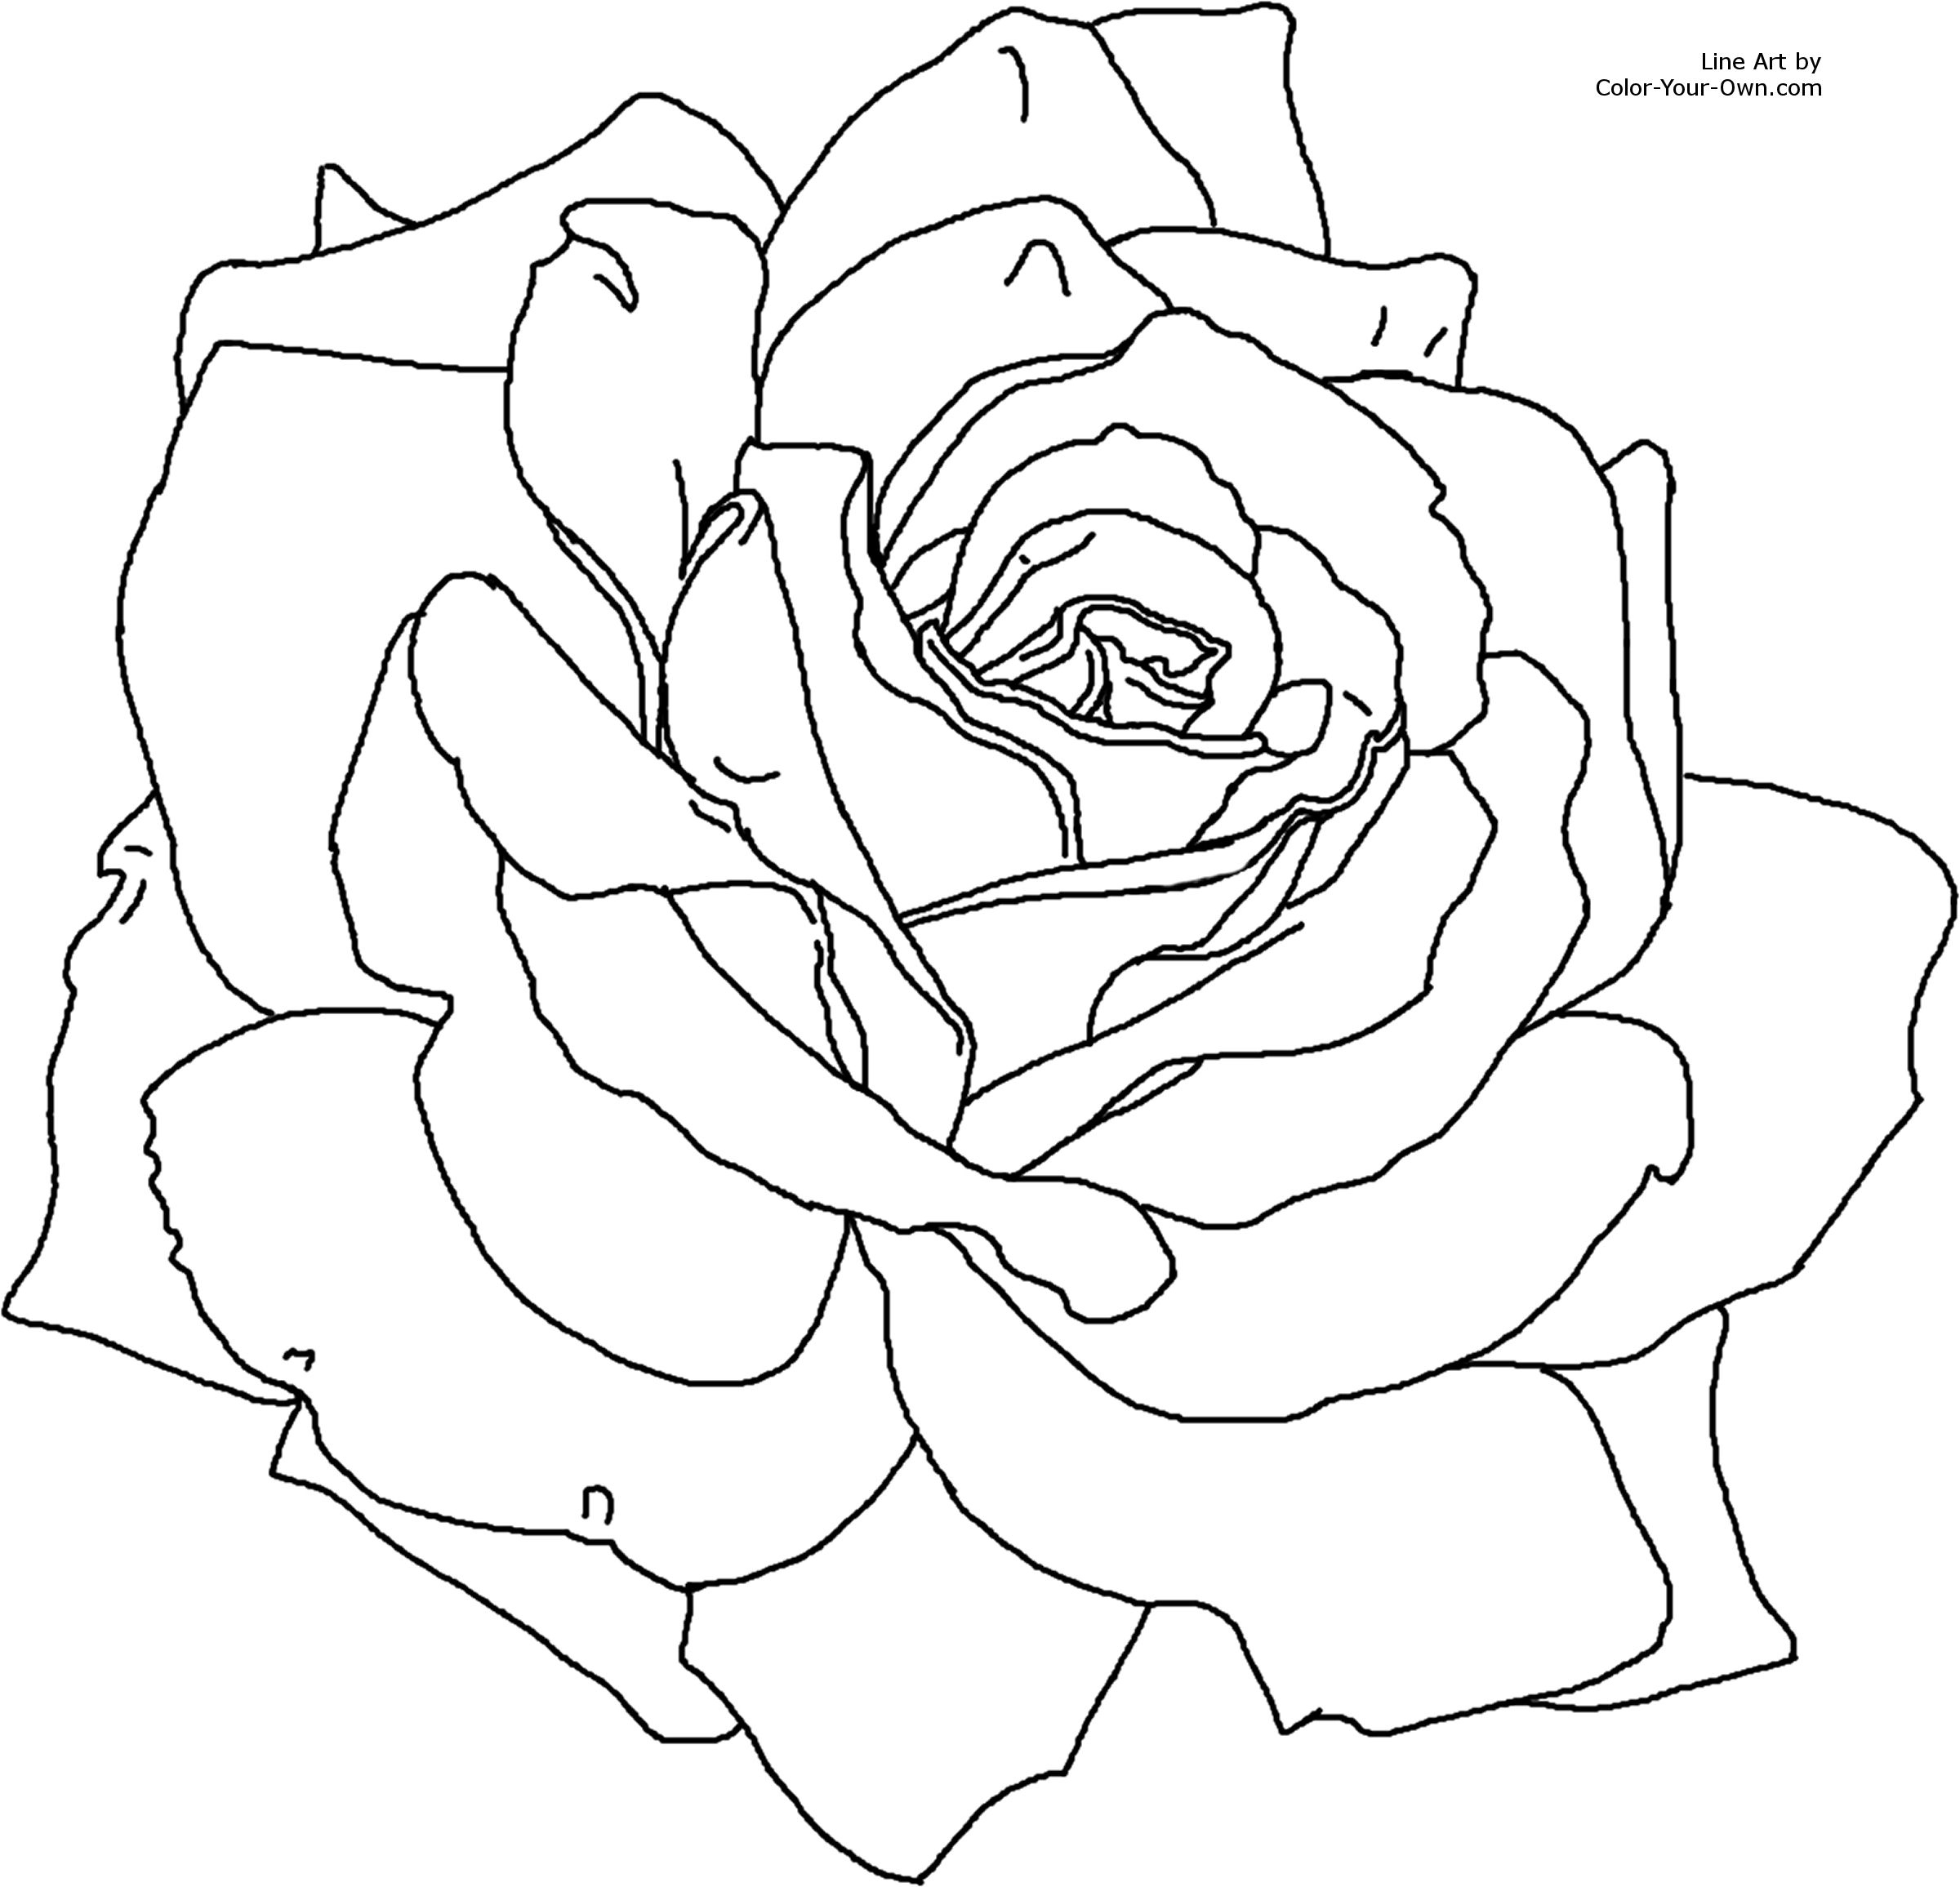 2400x2311 Roses Coloring Pages Elegant Free Coloring Pages Of Line Drawings